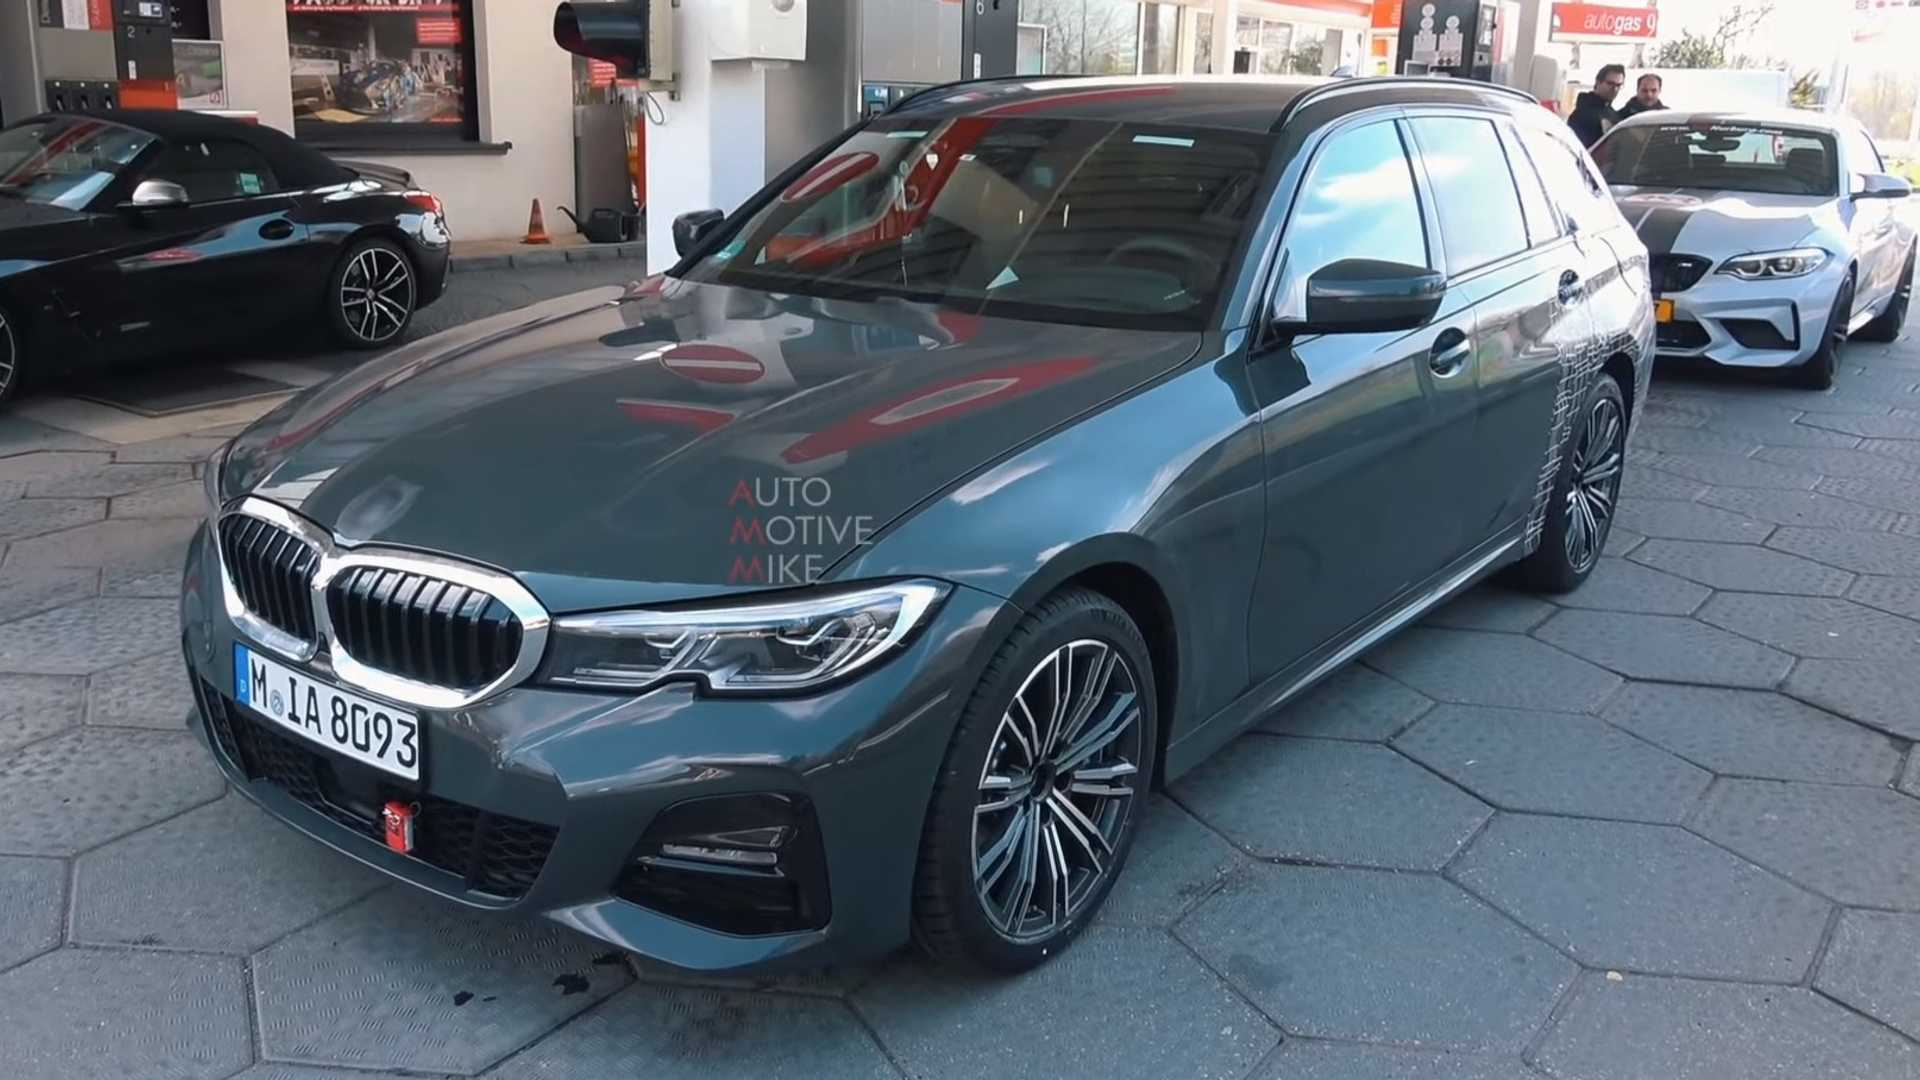 44 Best Review New BMW 3 Series Touring 2020 Picture for New BMW 3 Series Touring 2020